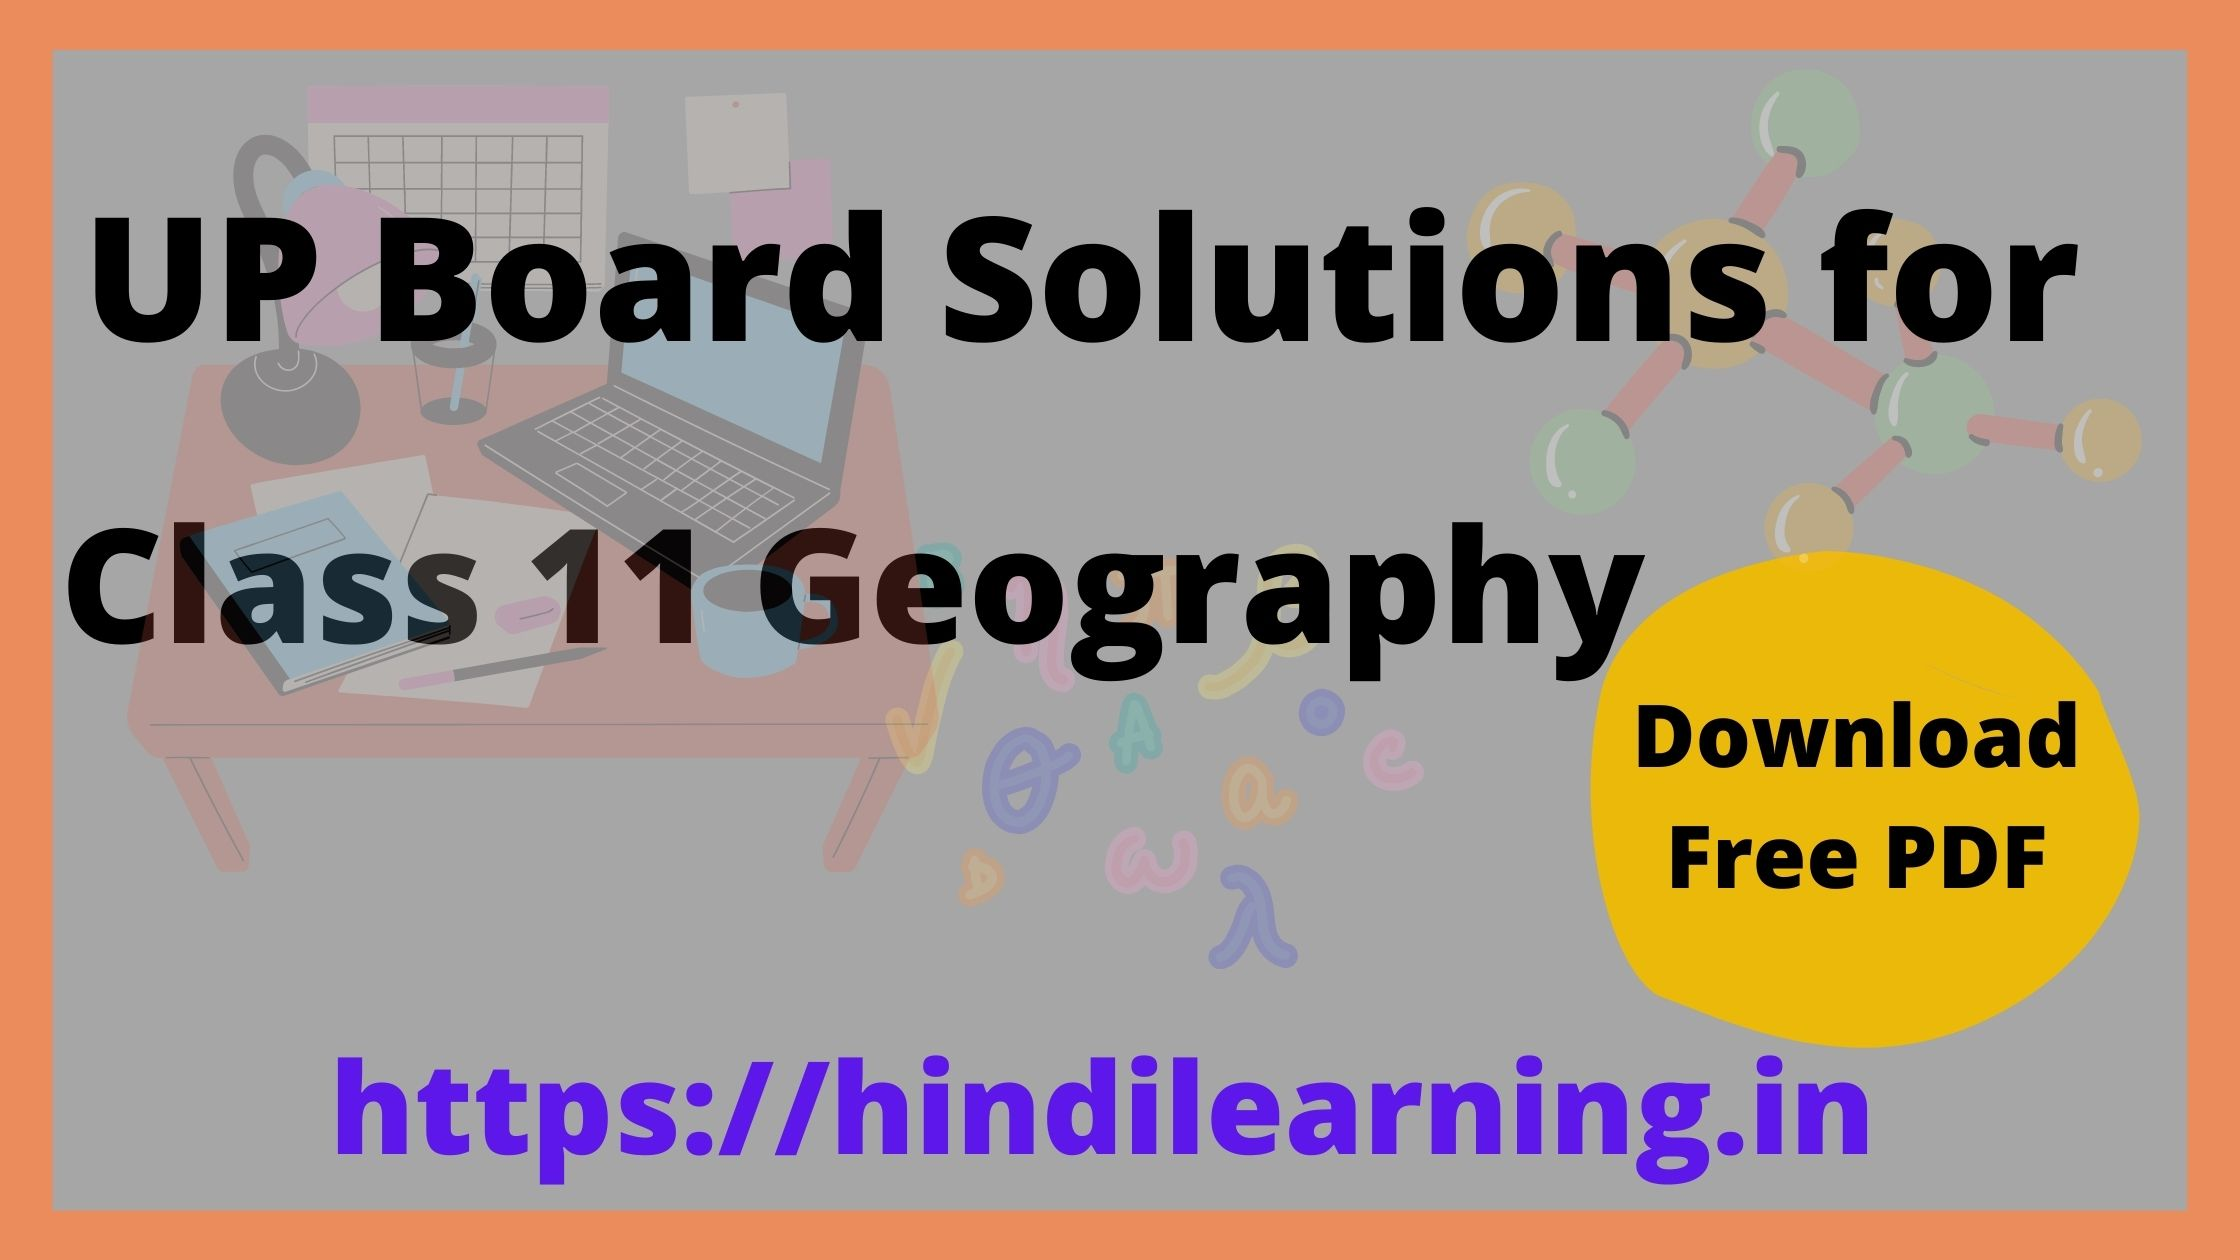 UP Board Solutions for Class 11 Geography भूगोल